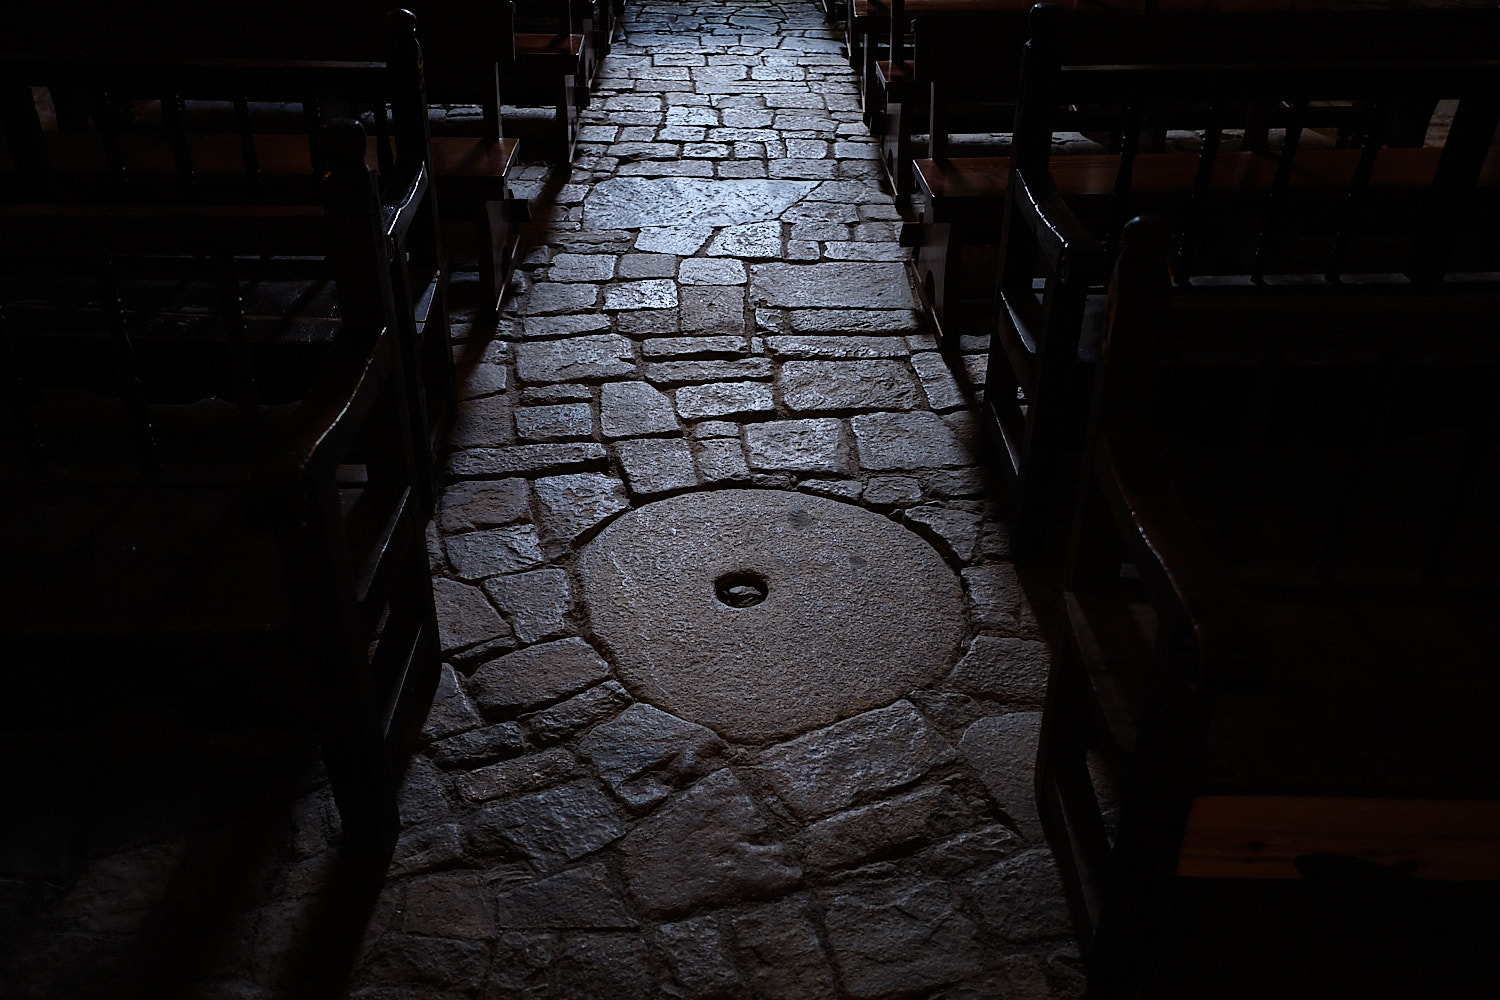 Interior view of the romanesque church of Taüll, Vall de Boí, Pyrenees, Spain